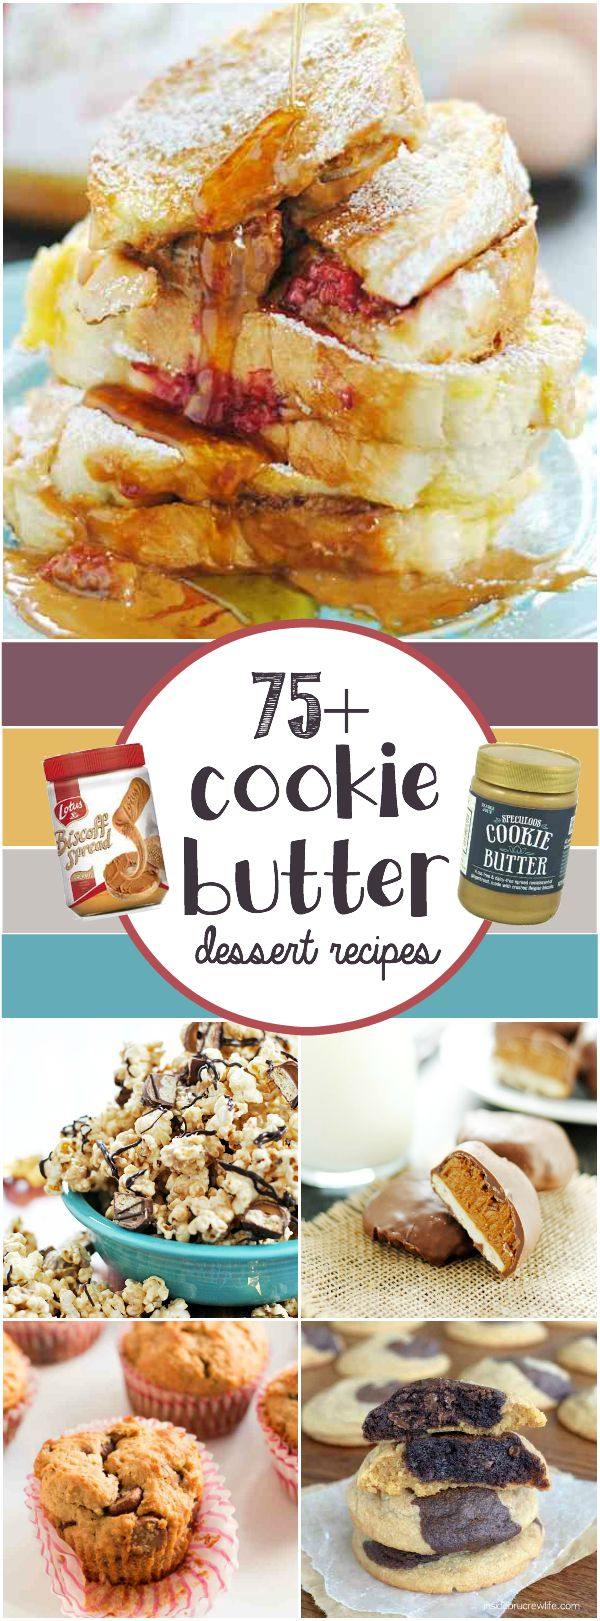 Over 75 delicious recipes that begin with cookie butter (or biscoff, speculoos, whatever you call it)!